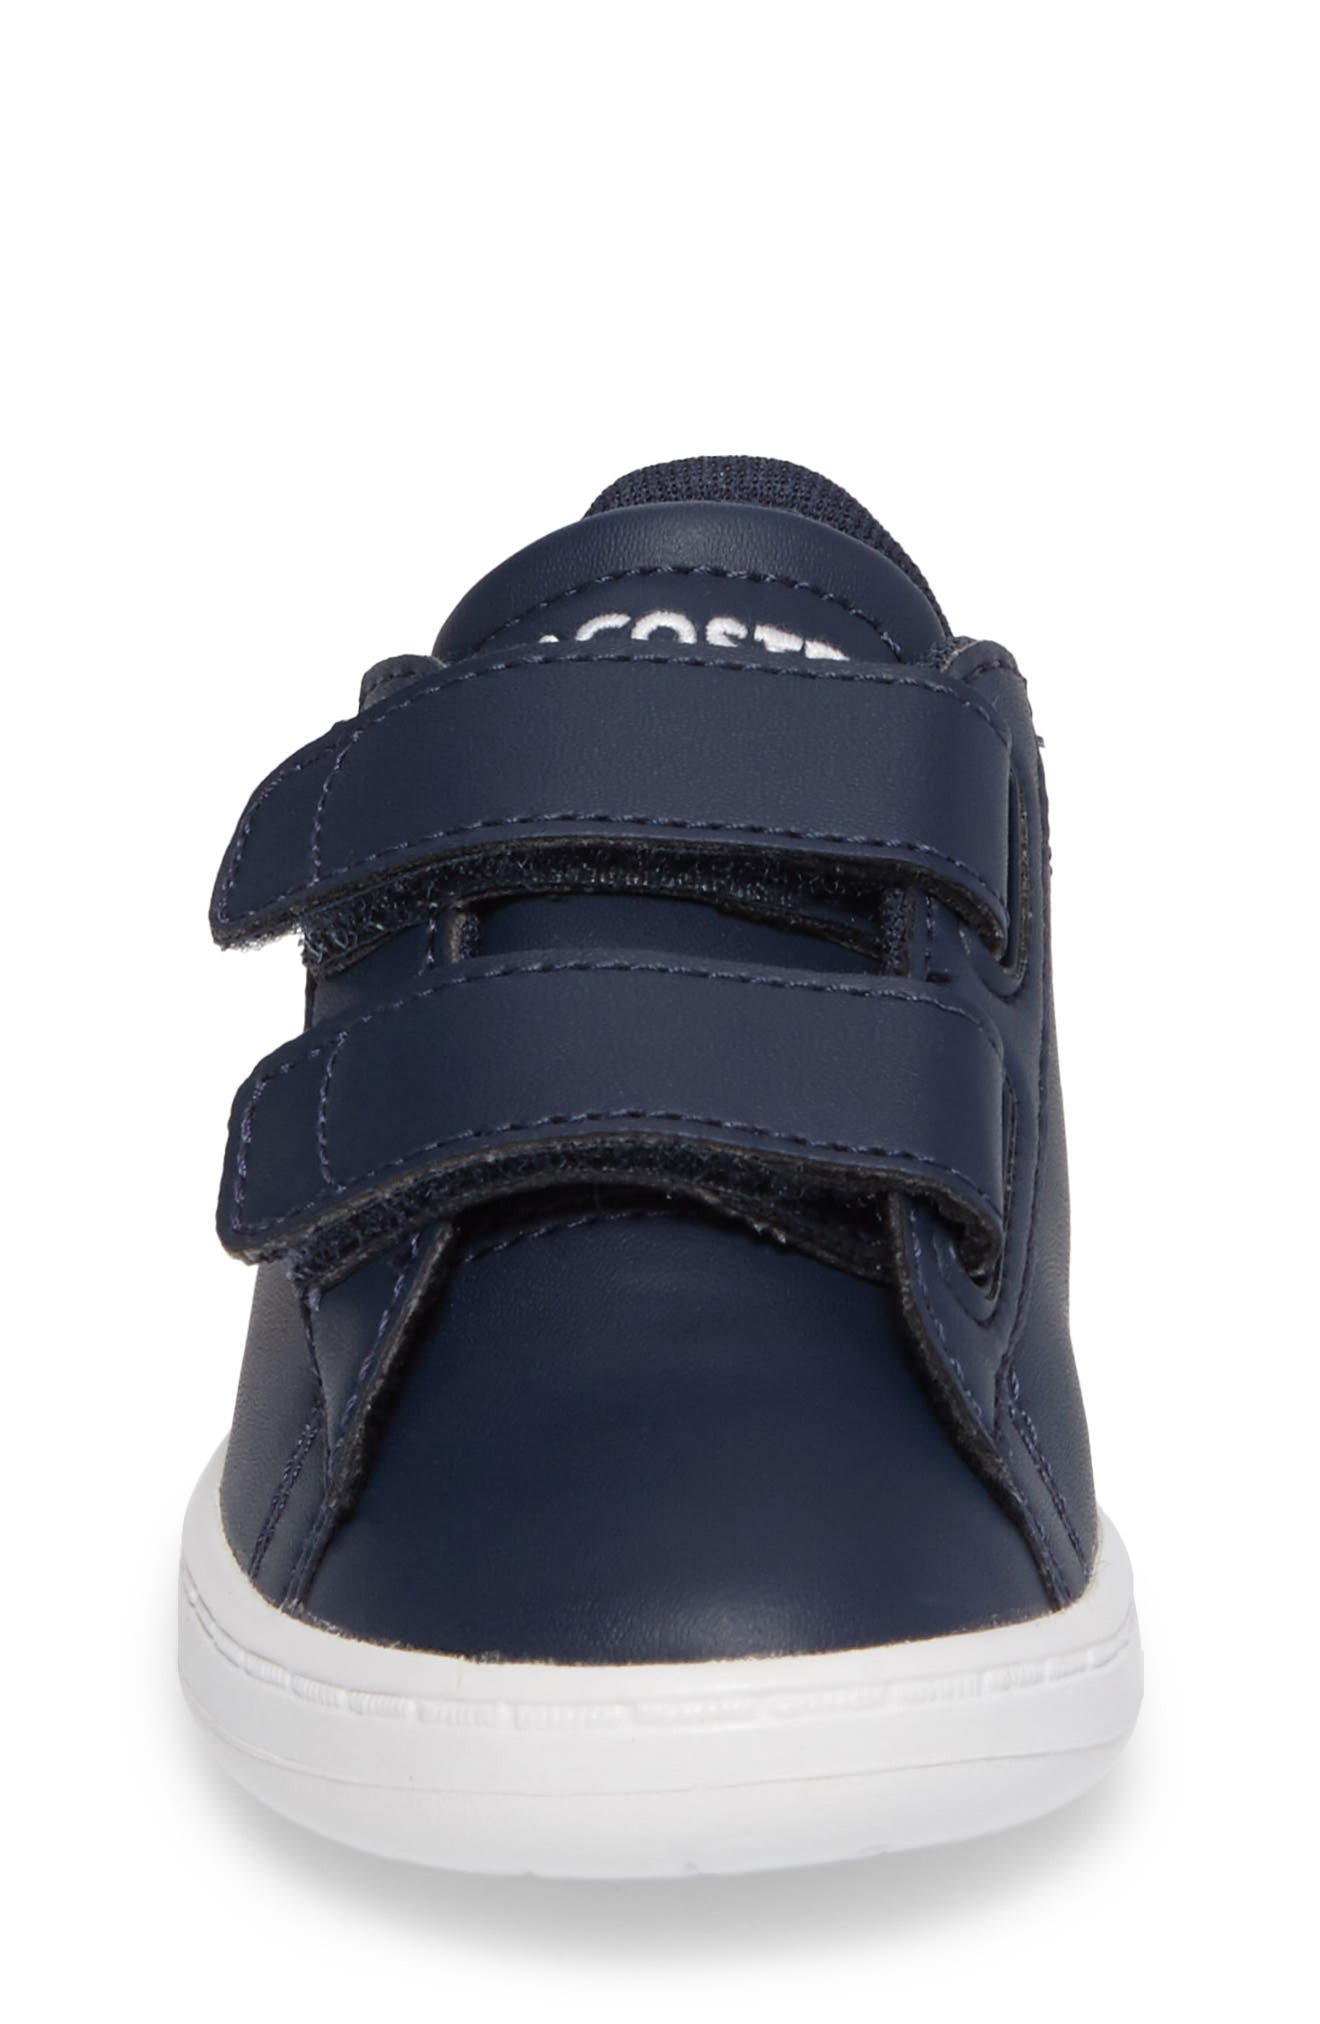 Alternate Image 4  - Lacoste Carnaby Evo Sneaker (Baby, Walker, Toddler & Little Kid)